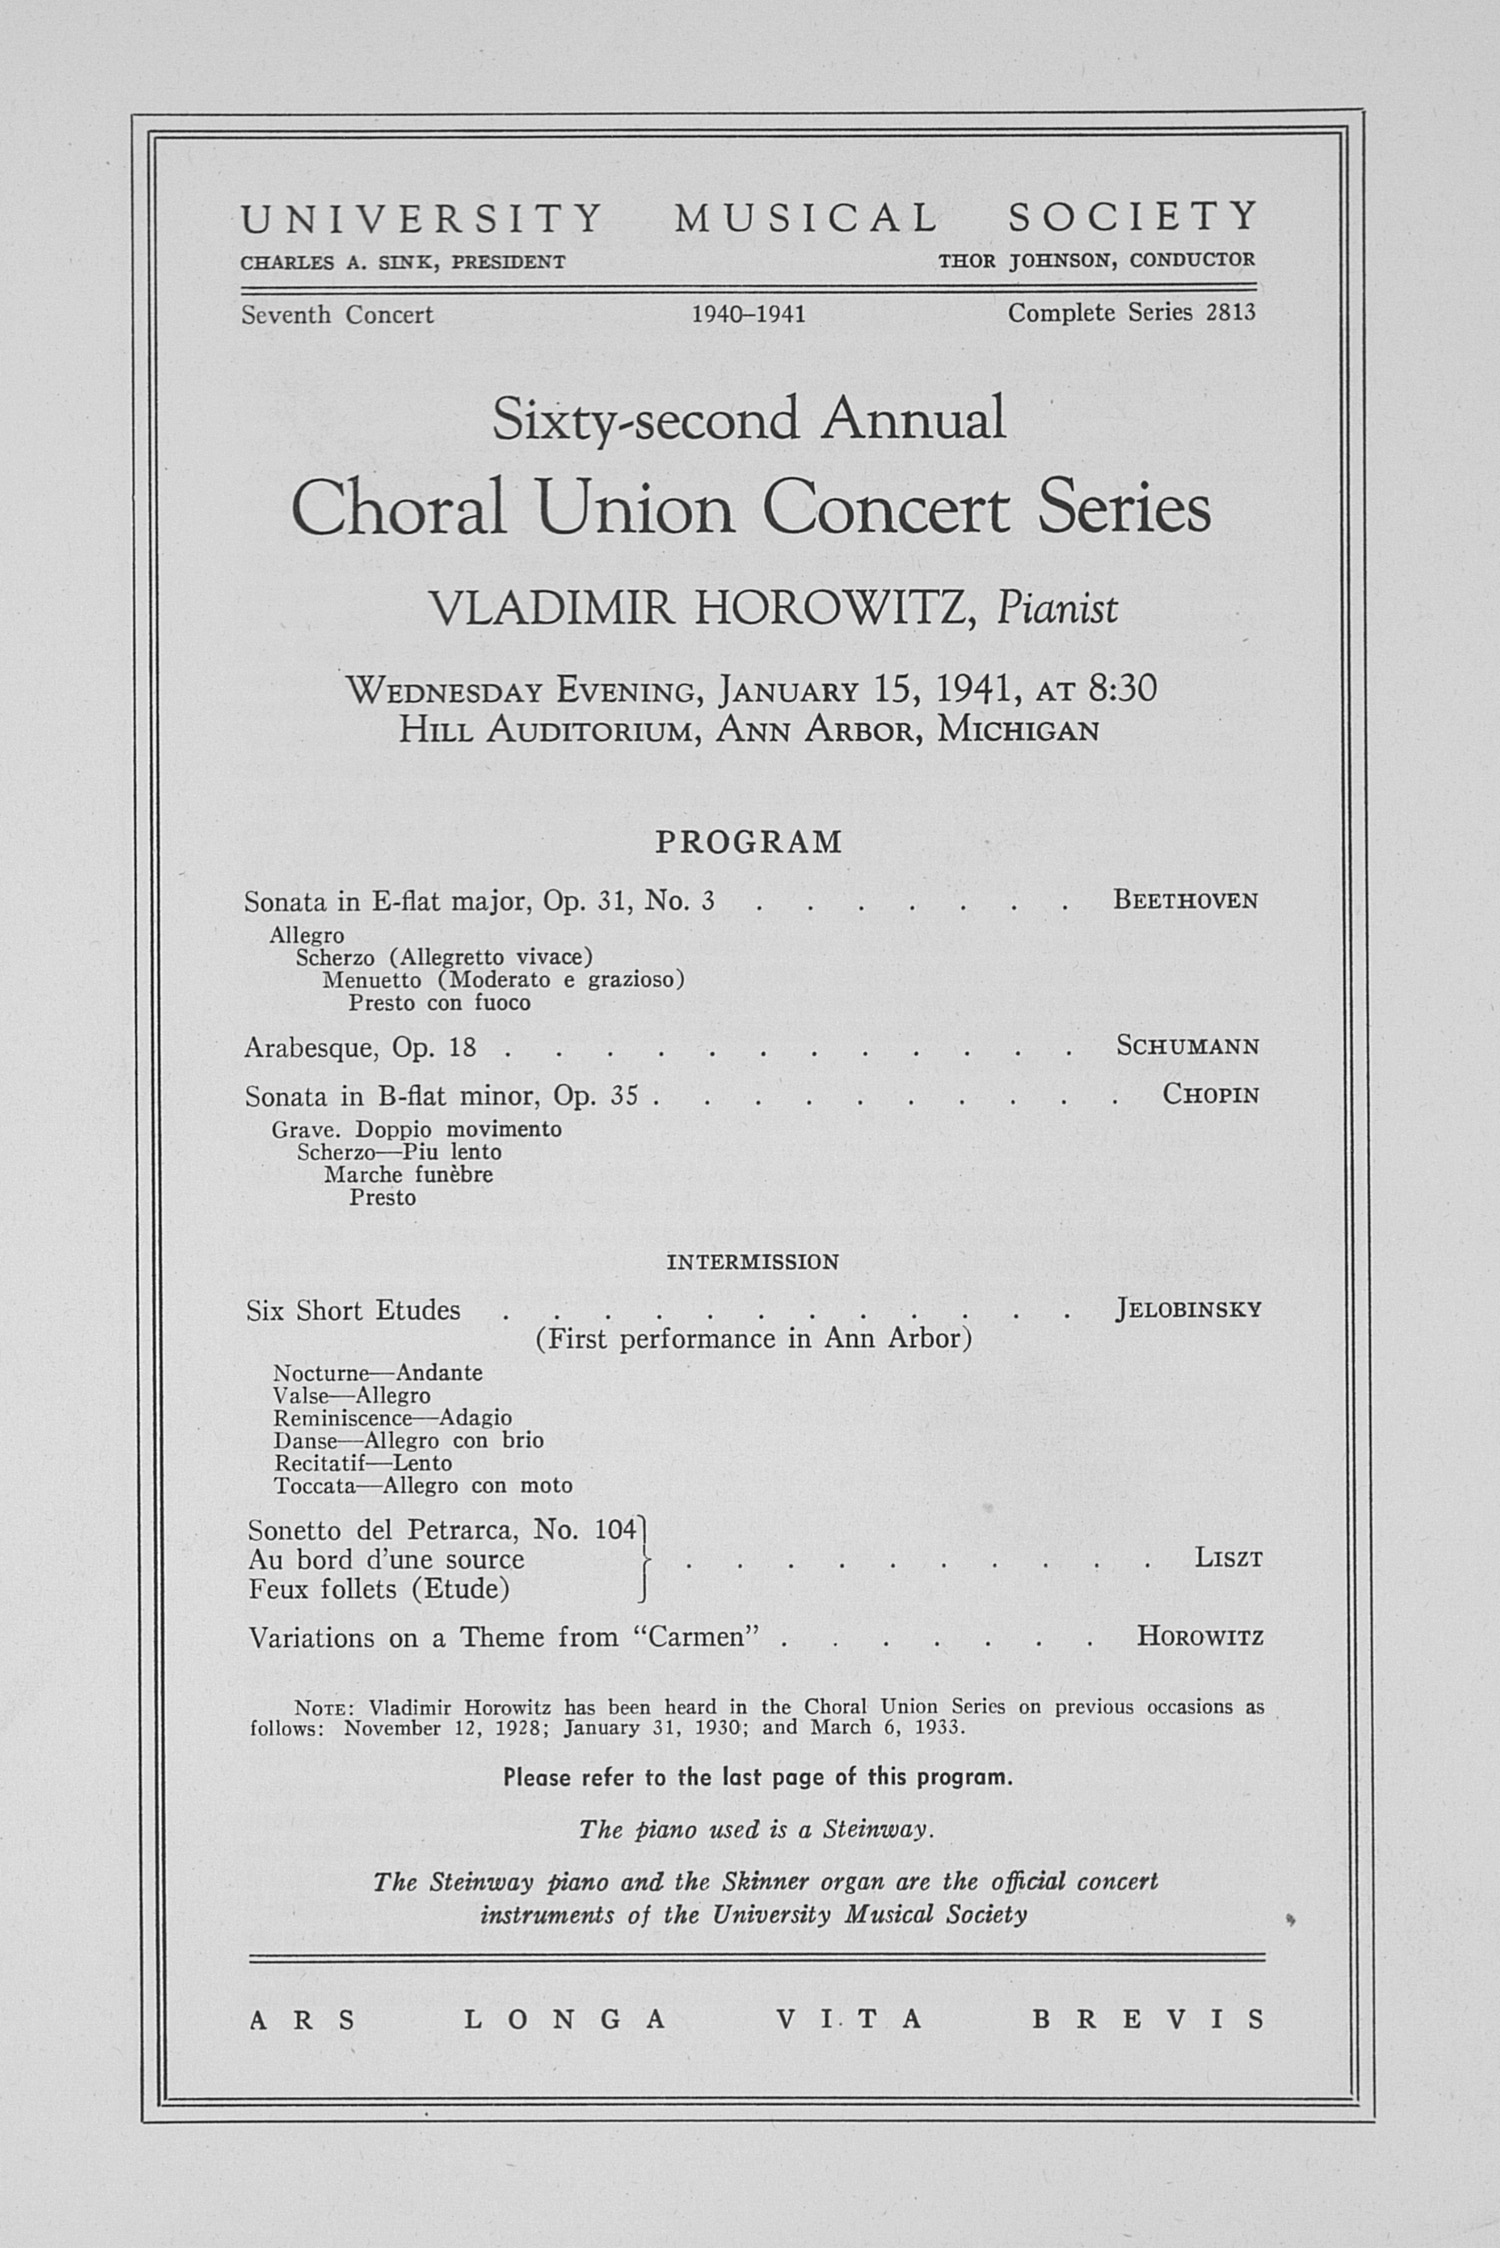 UMS Concert Program, January 15, 1941: Sixty-second Annual Choral Union Concert Series -- Vladimir Horowitz image